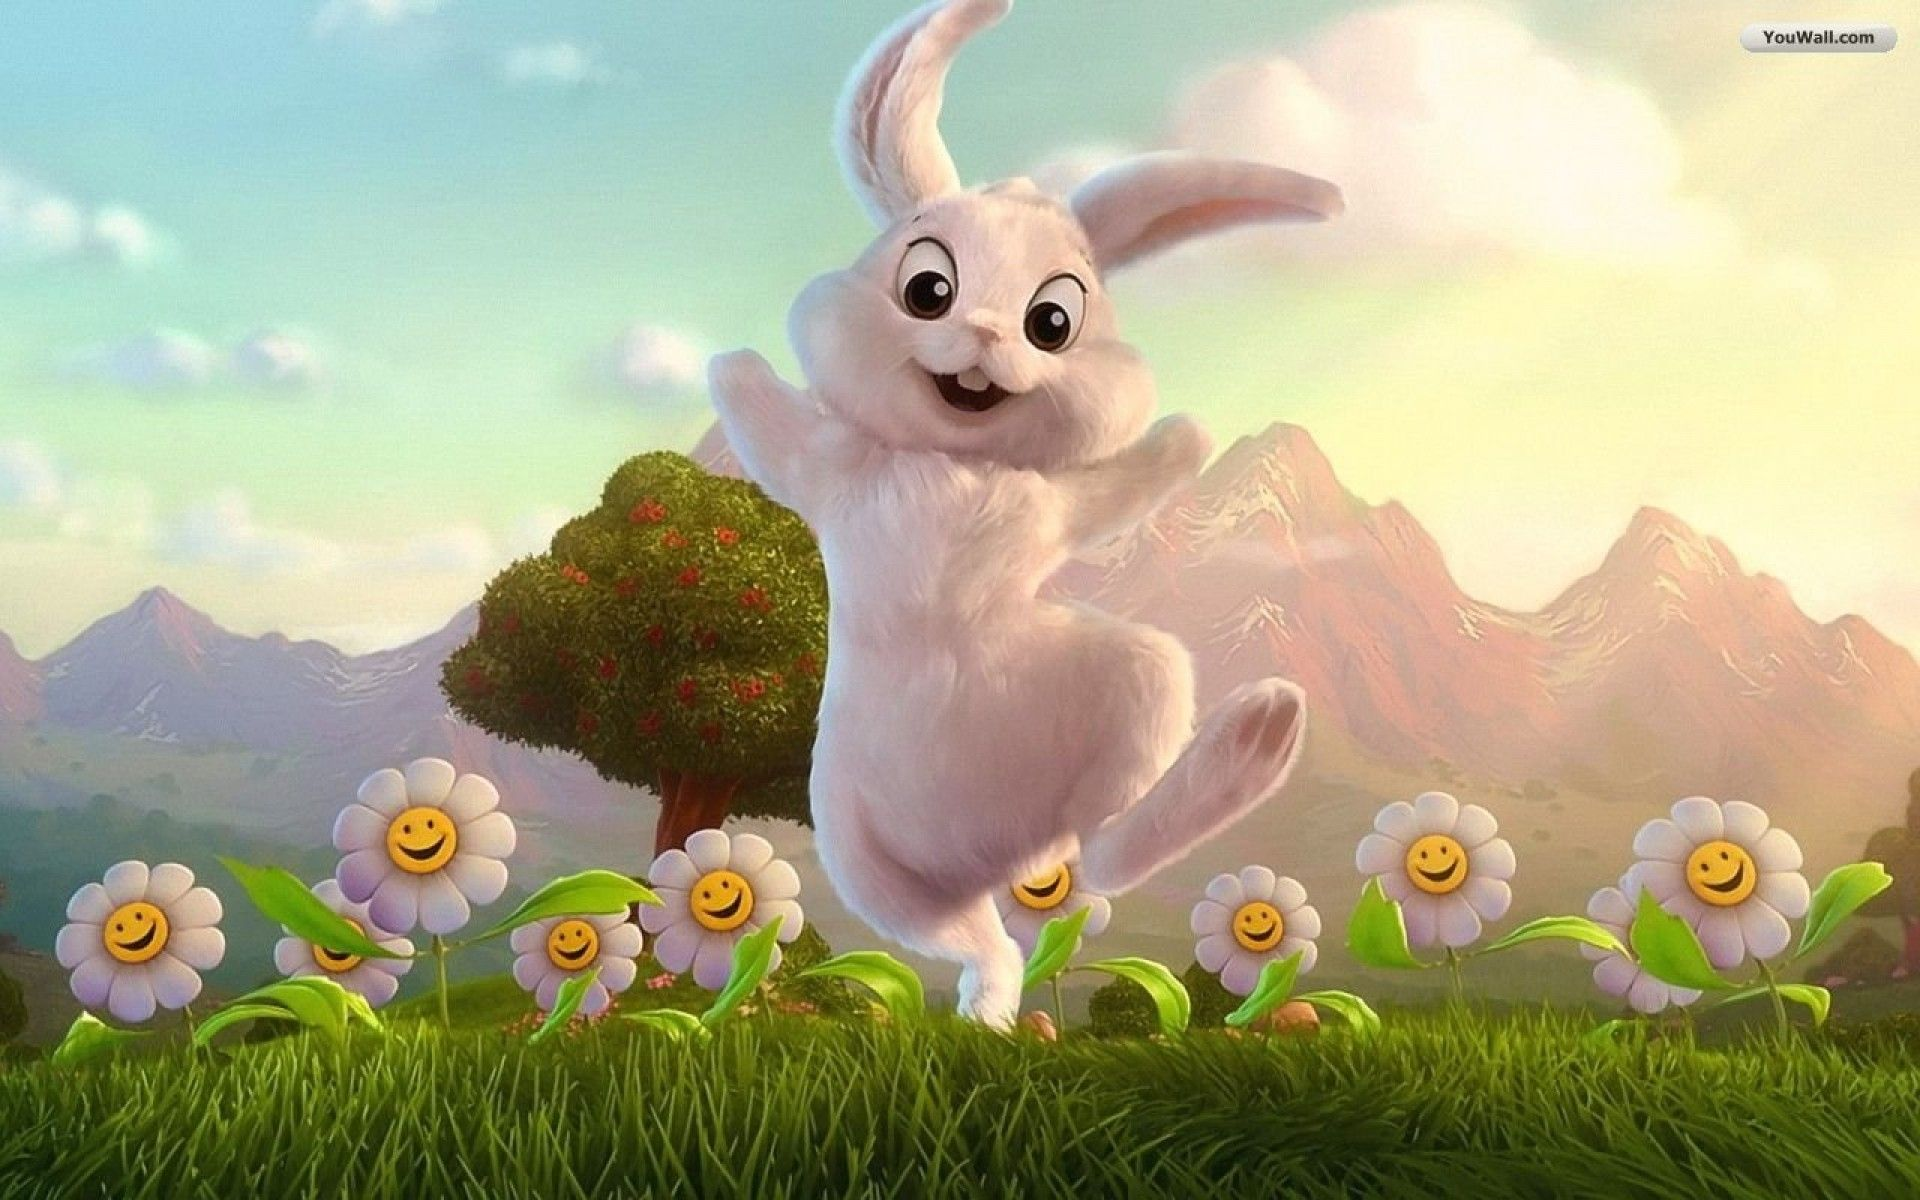 1000 Images About Easter Wallpaper On Pinterest: Does Your Kid Believe In The Easter Bunny? A Blog About